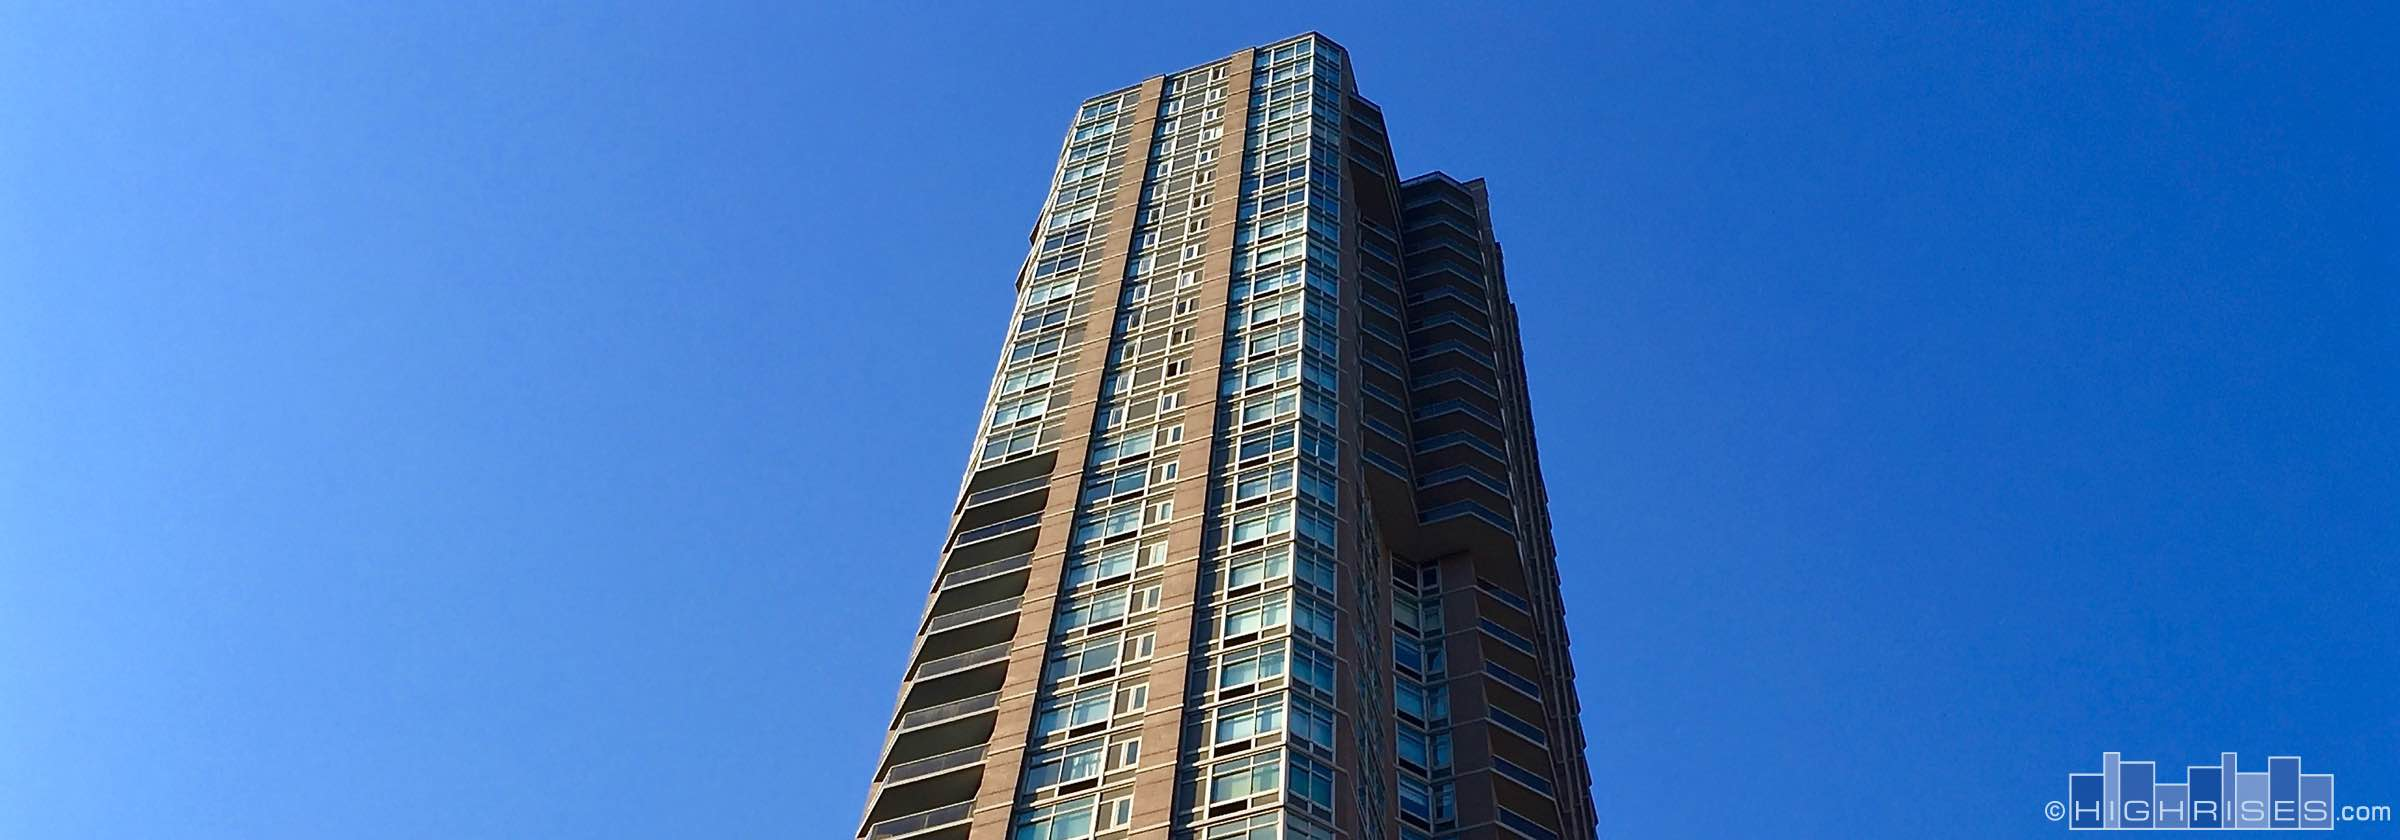 The royale condos for sale 188 east 64th street new york for Condos for sale nyc